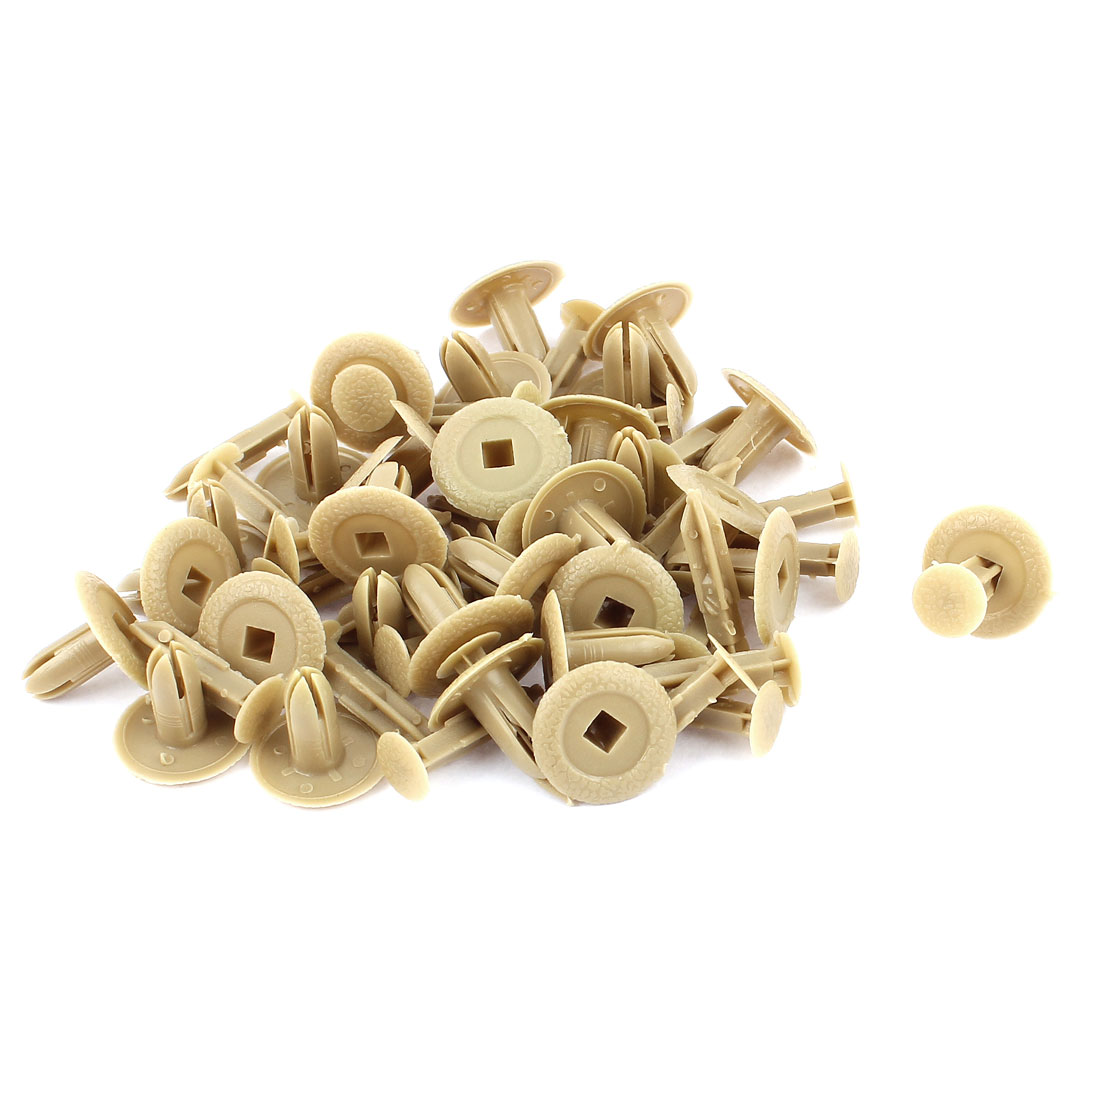 30 Pcs 18mm x 7mm Khaki Plastic Rivet Bumper Lining Trim Panel Fastener Clips for Mazda M3M6M2